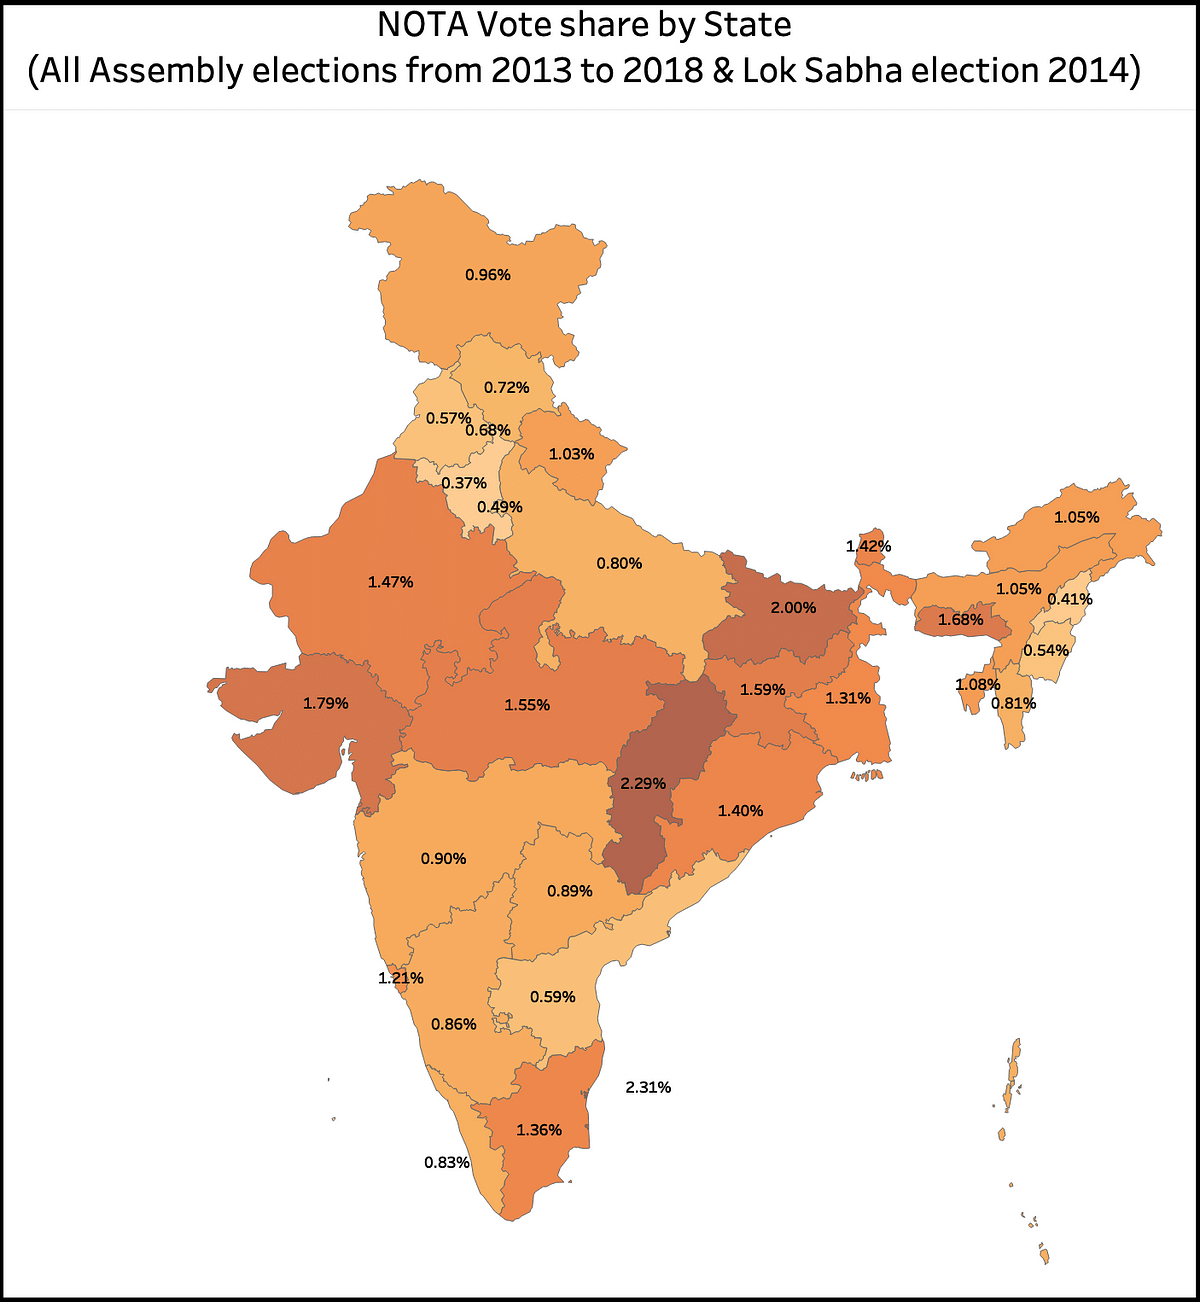 Puducherry and Chhattisgarh have the highest NOTA percentage, Haryana has the lowest.